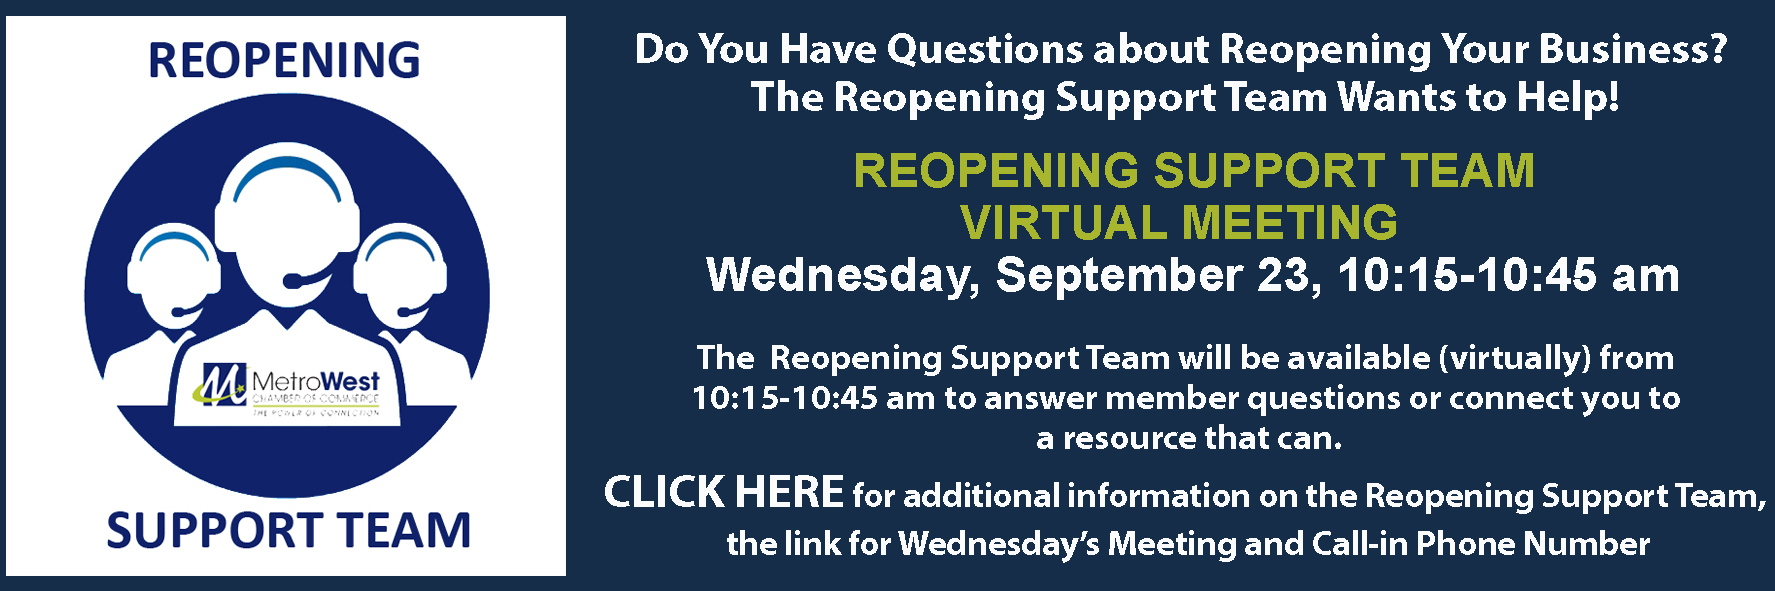 Reopening-Support-Team-9-23-2020-web-Slider.jpg